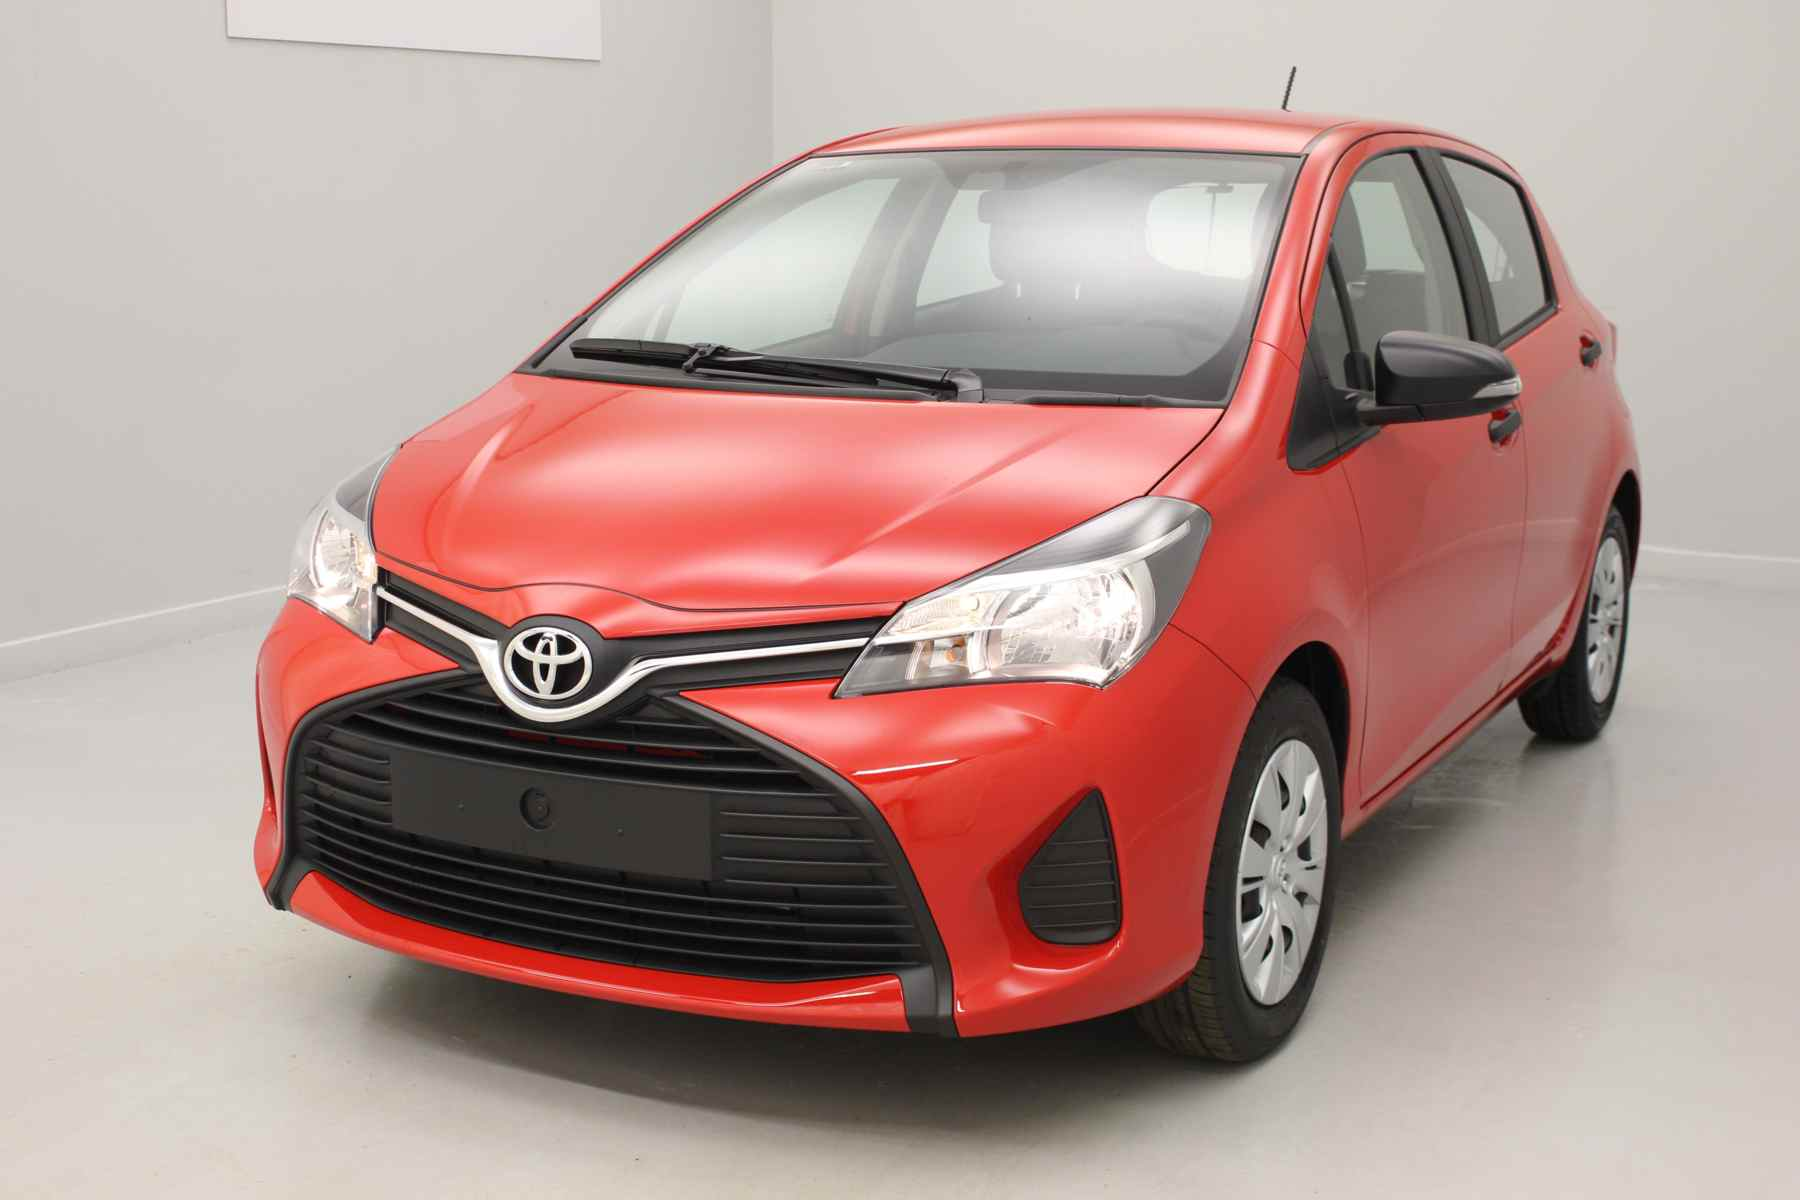 prix toyota yaris neuve achat toyota yaris essence neuve pas cher 27 toyota yaris hybride lca. Black Bedroom Furniture Sets. Home Design Ideas